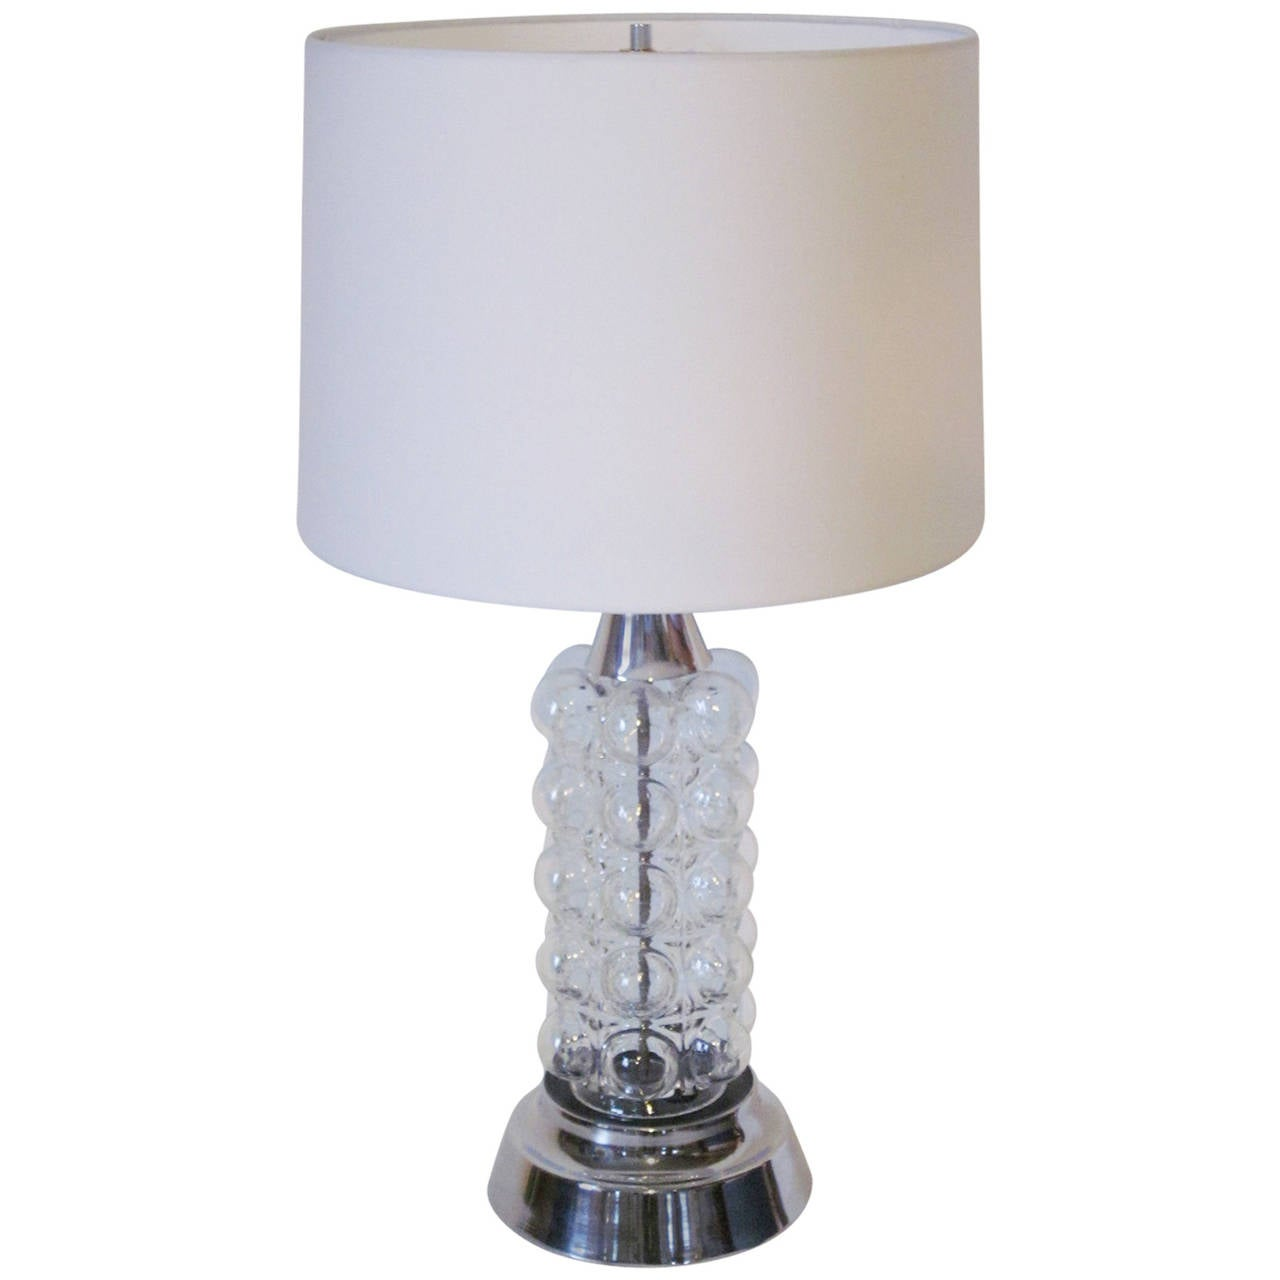 Delicieux Helene Tynell Styled Bubble Table Lamp For Sale